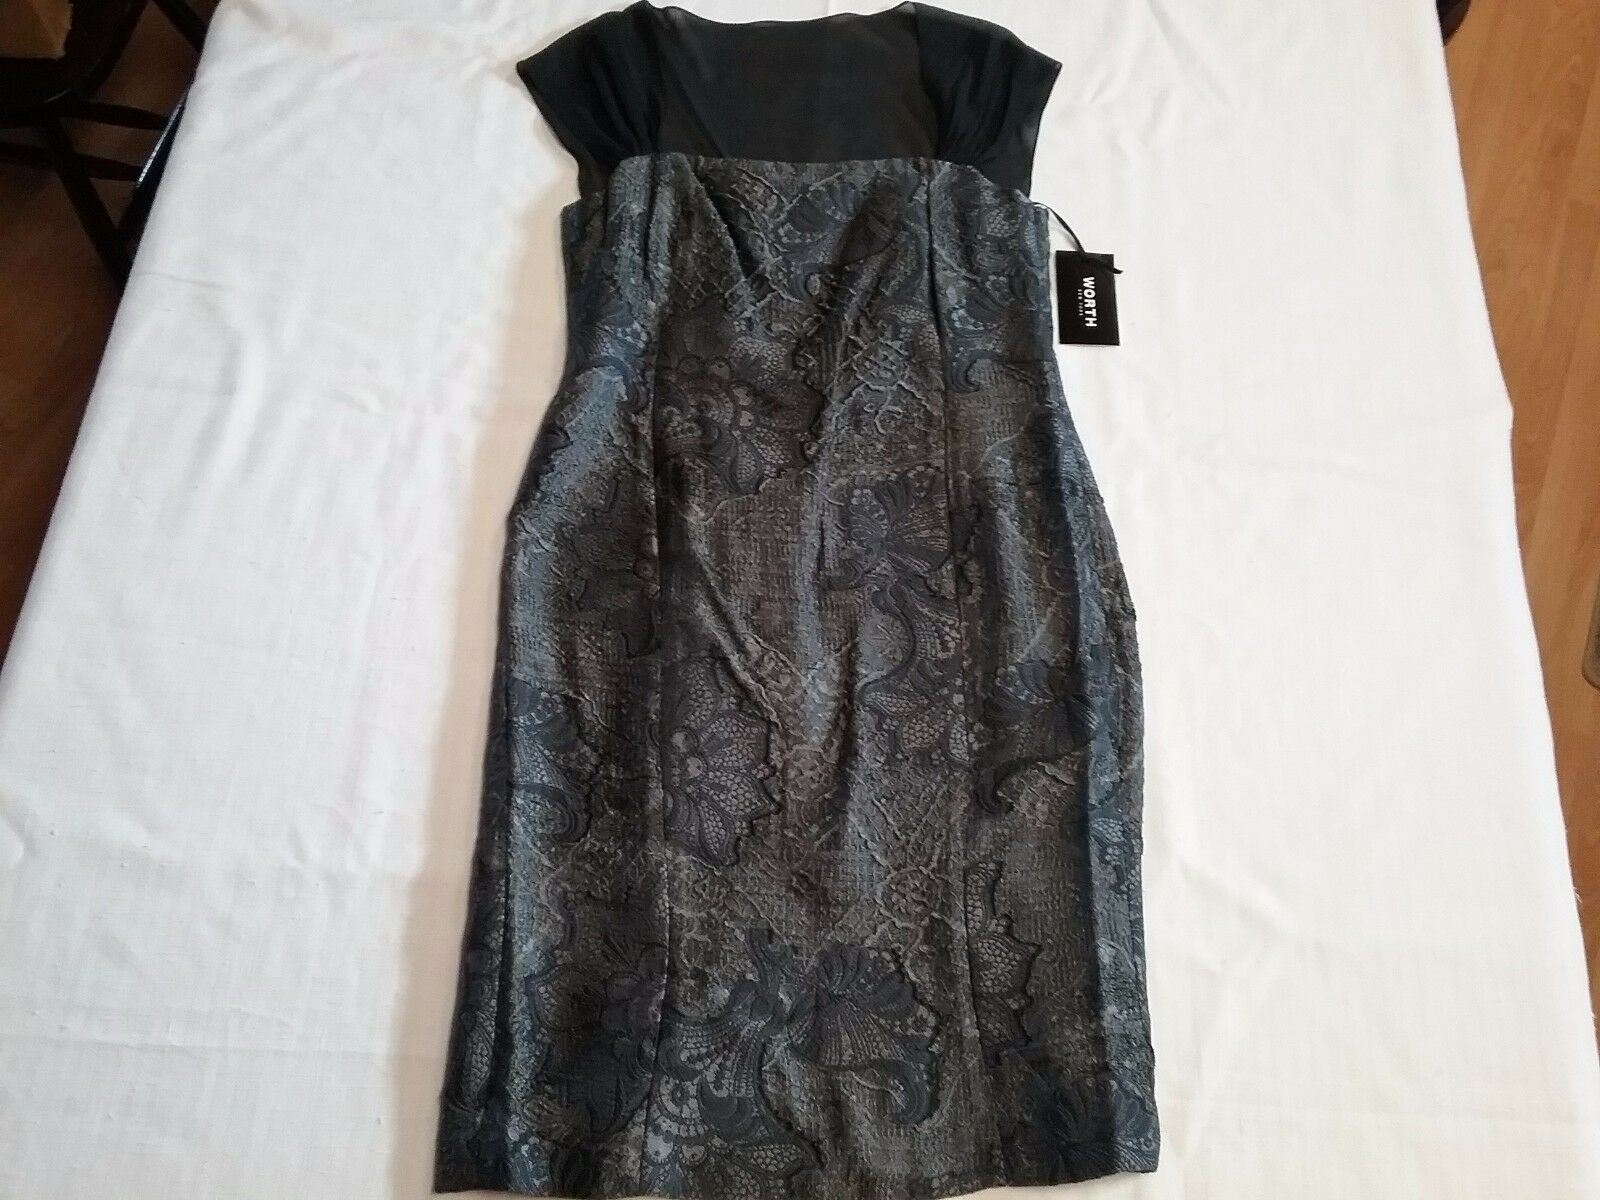 WORTH NY damen Sheath Dress grau Metallic Burnout Jacquard schwarz Mesh Sz-8 NWT